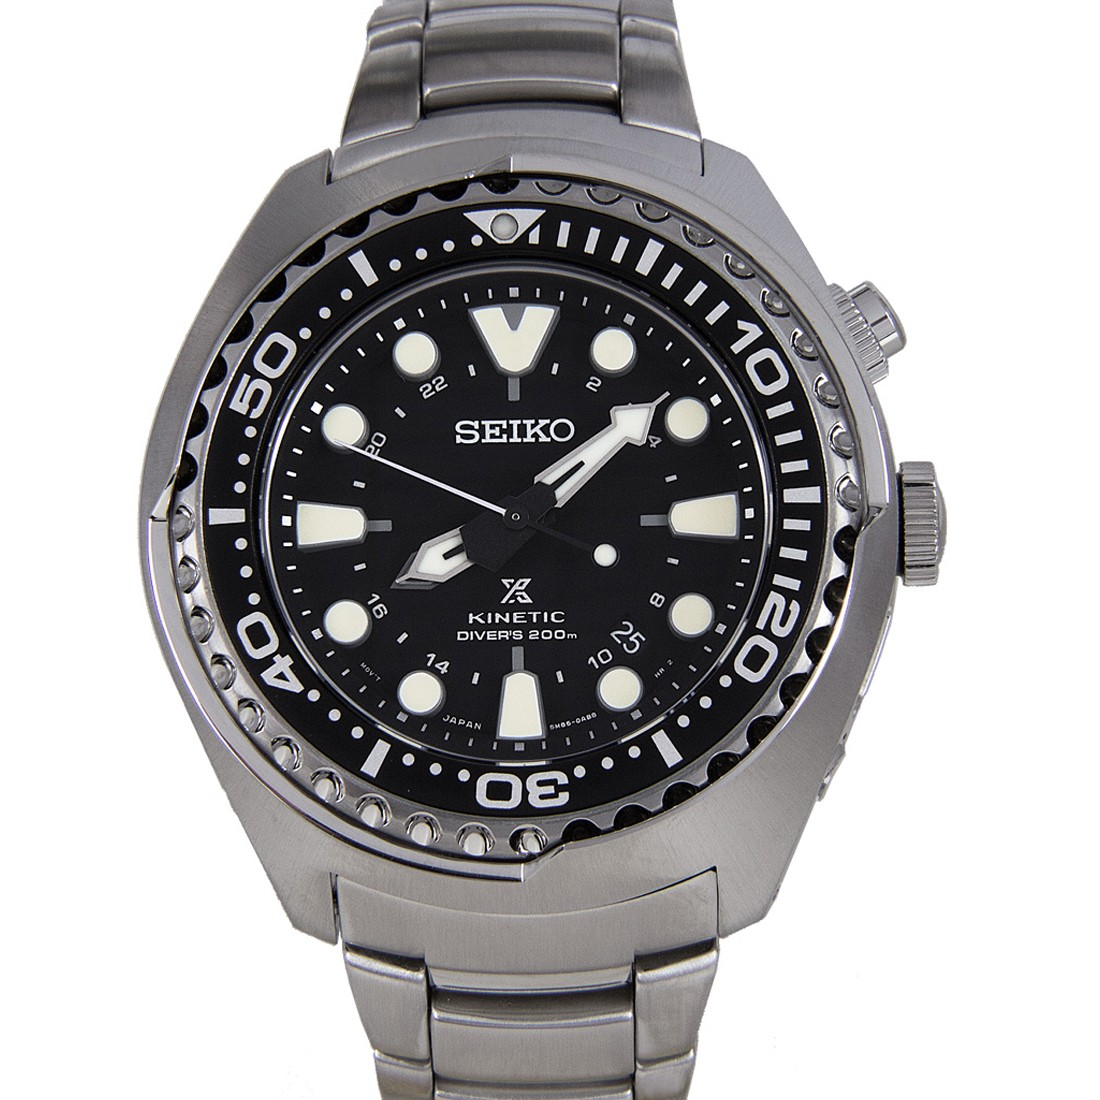 Ultimate top 33 best dive watches for men 2018 the watch - Best seiko dive watch ...